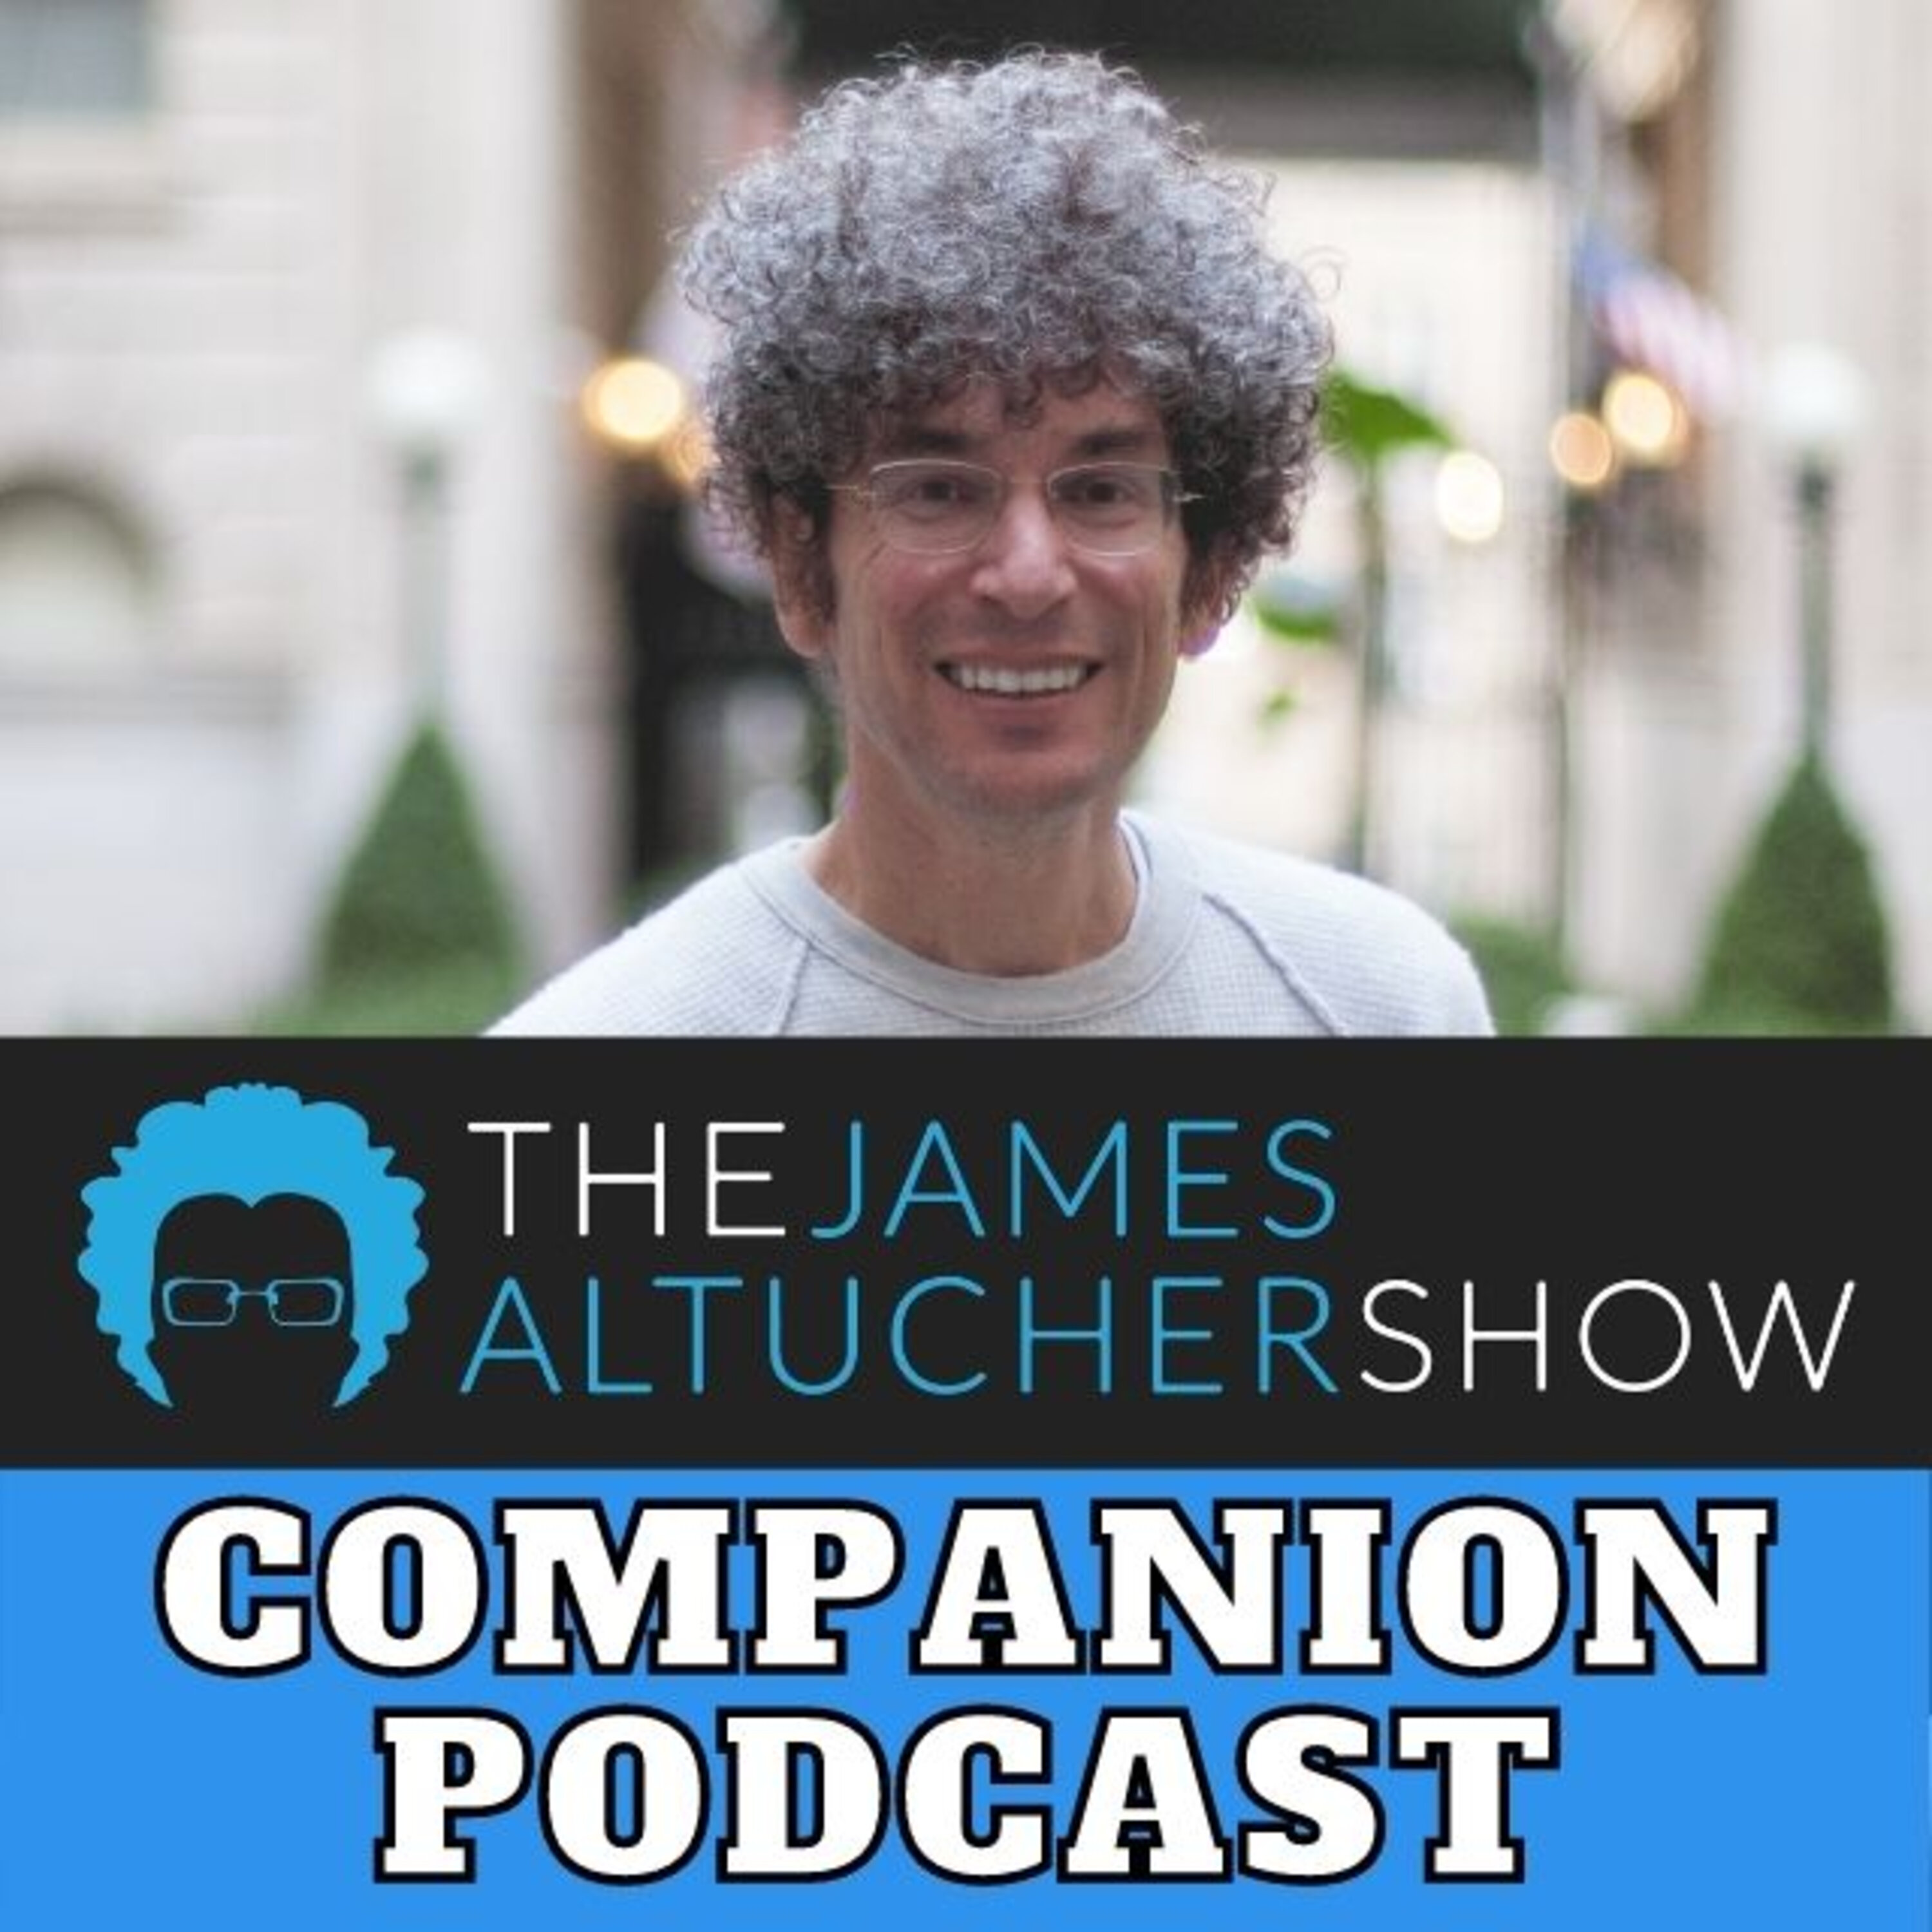 The Companion Podcast Episode 05: Jay got scammed in Crypto? Nathan told his love story and Jen Glantz crashed the live taping!?